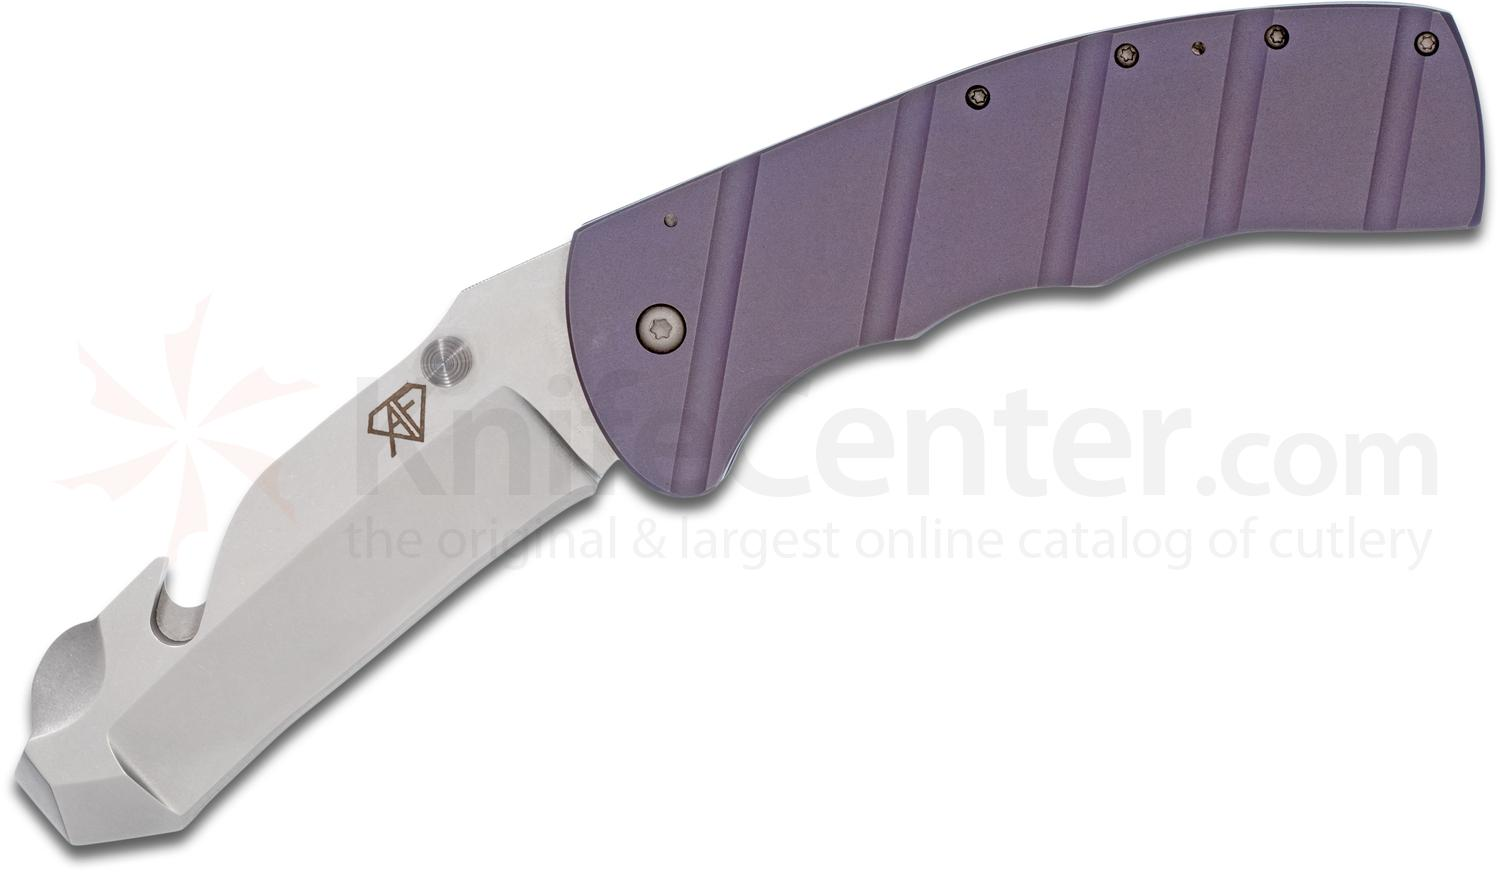 Aaron Frederick Custom VBSS Breacher Folding Knife 3.5 inch CPM-154 Blade with Pry Bar and Strap Cutter, Milled Purple Titanium Handles